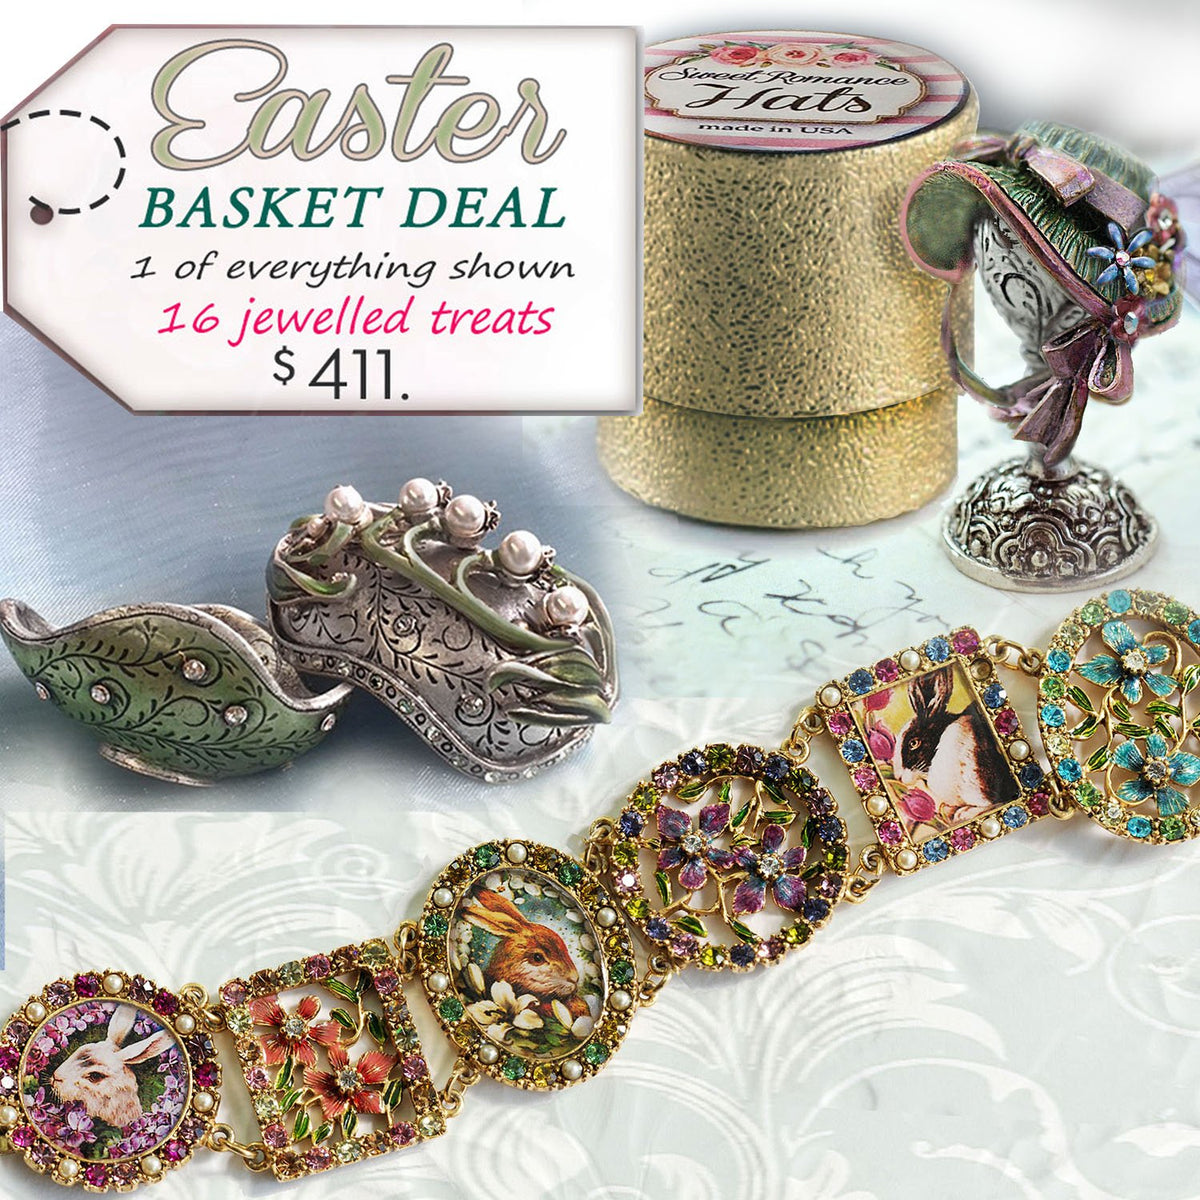 Easter Basket Deal